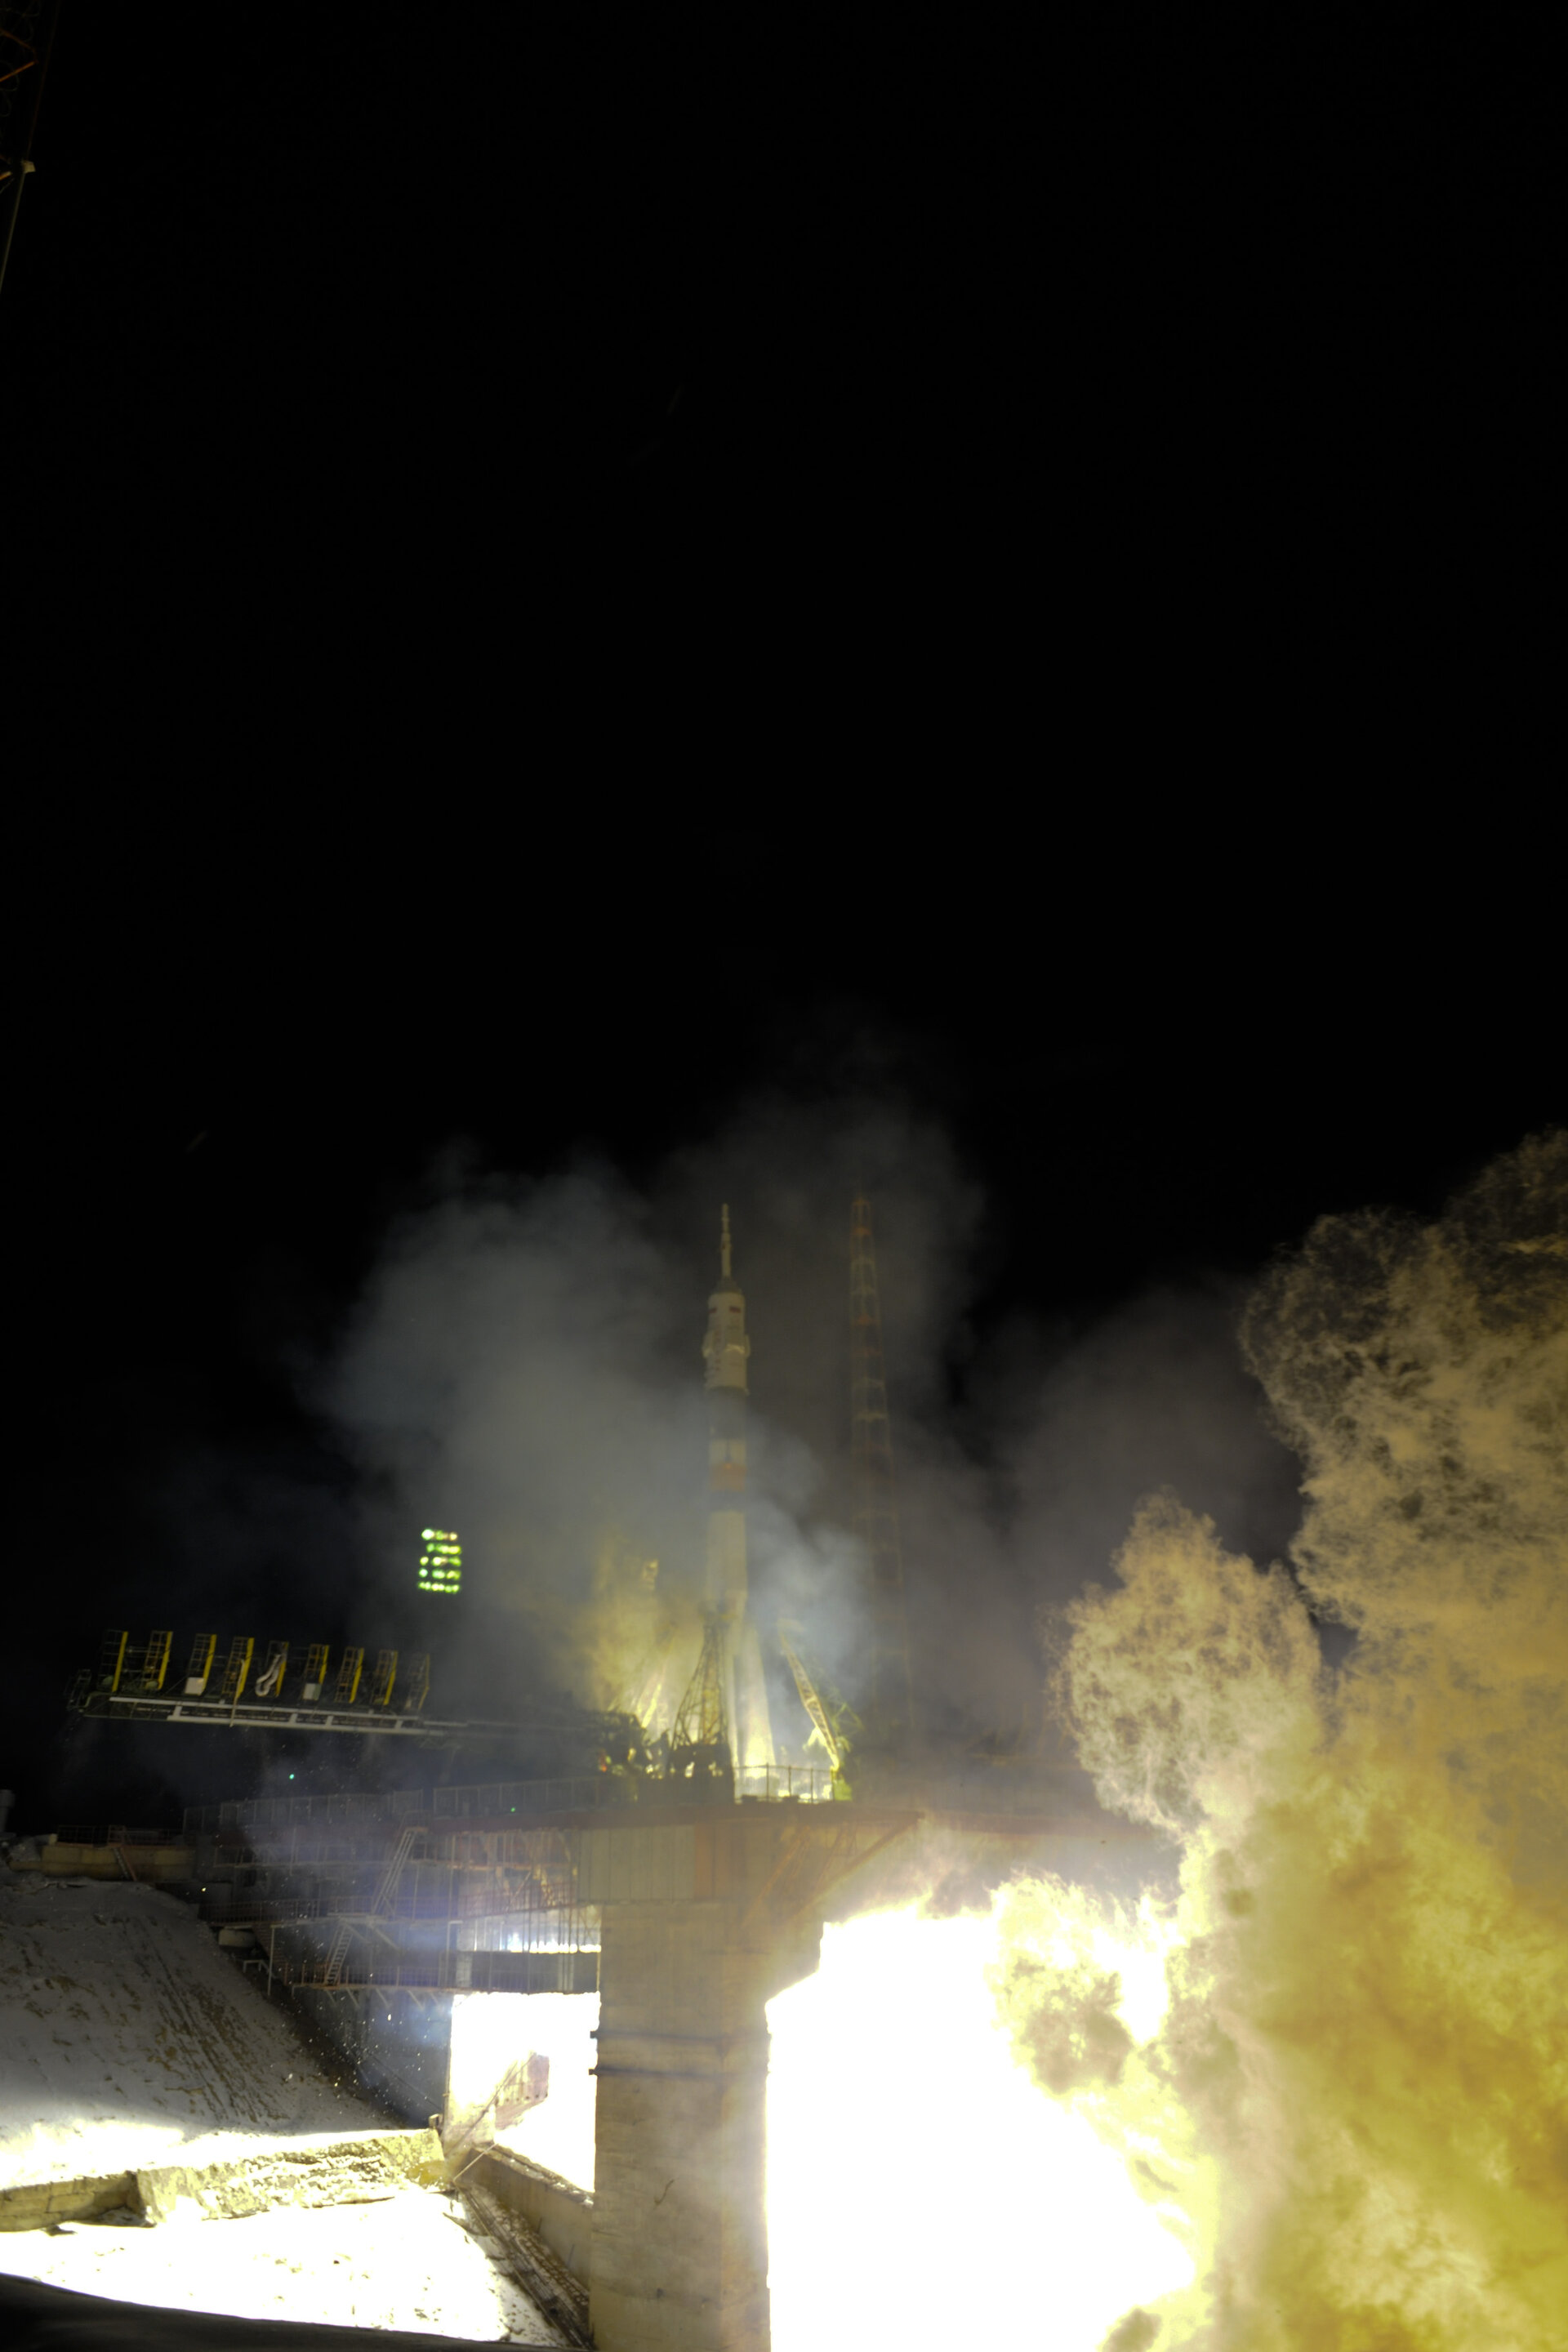 Launch of the TMA-03M Soyuz on 21 December 2011